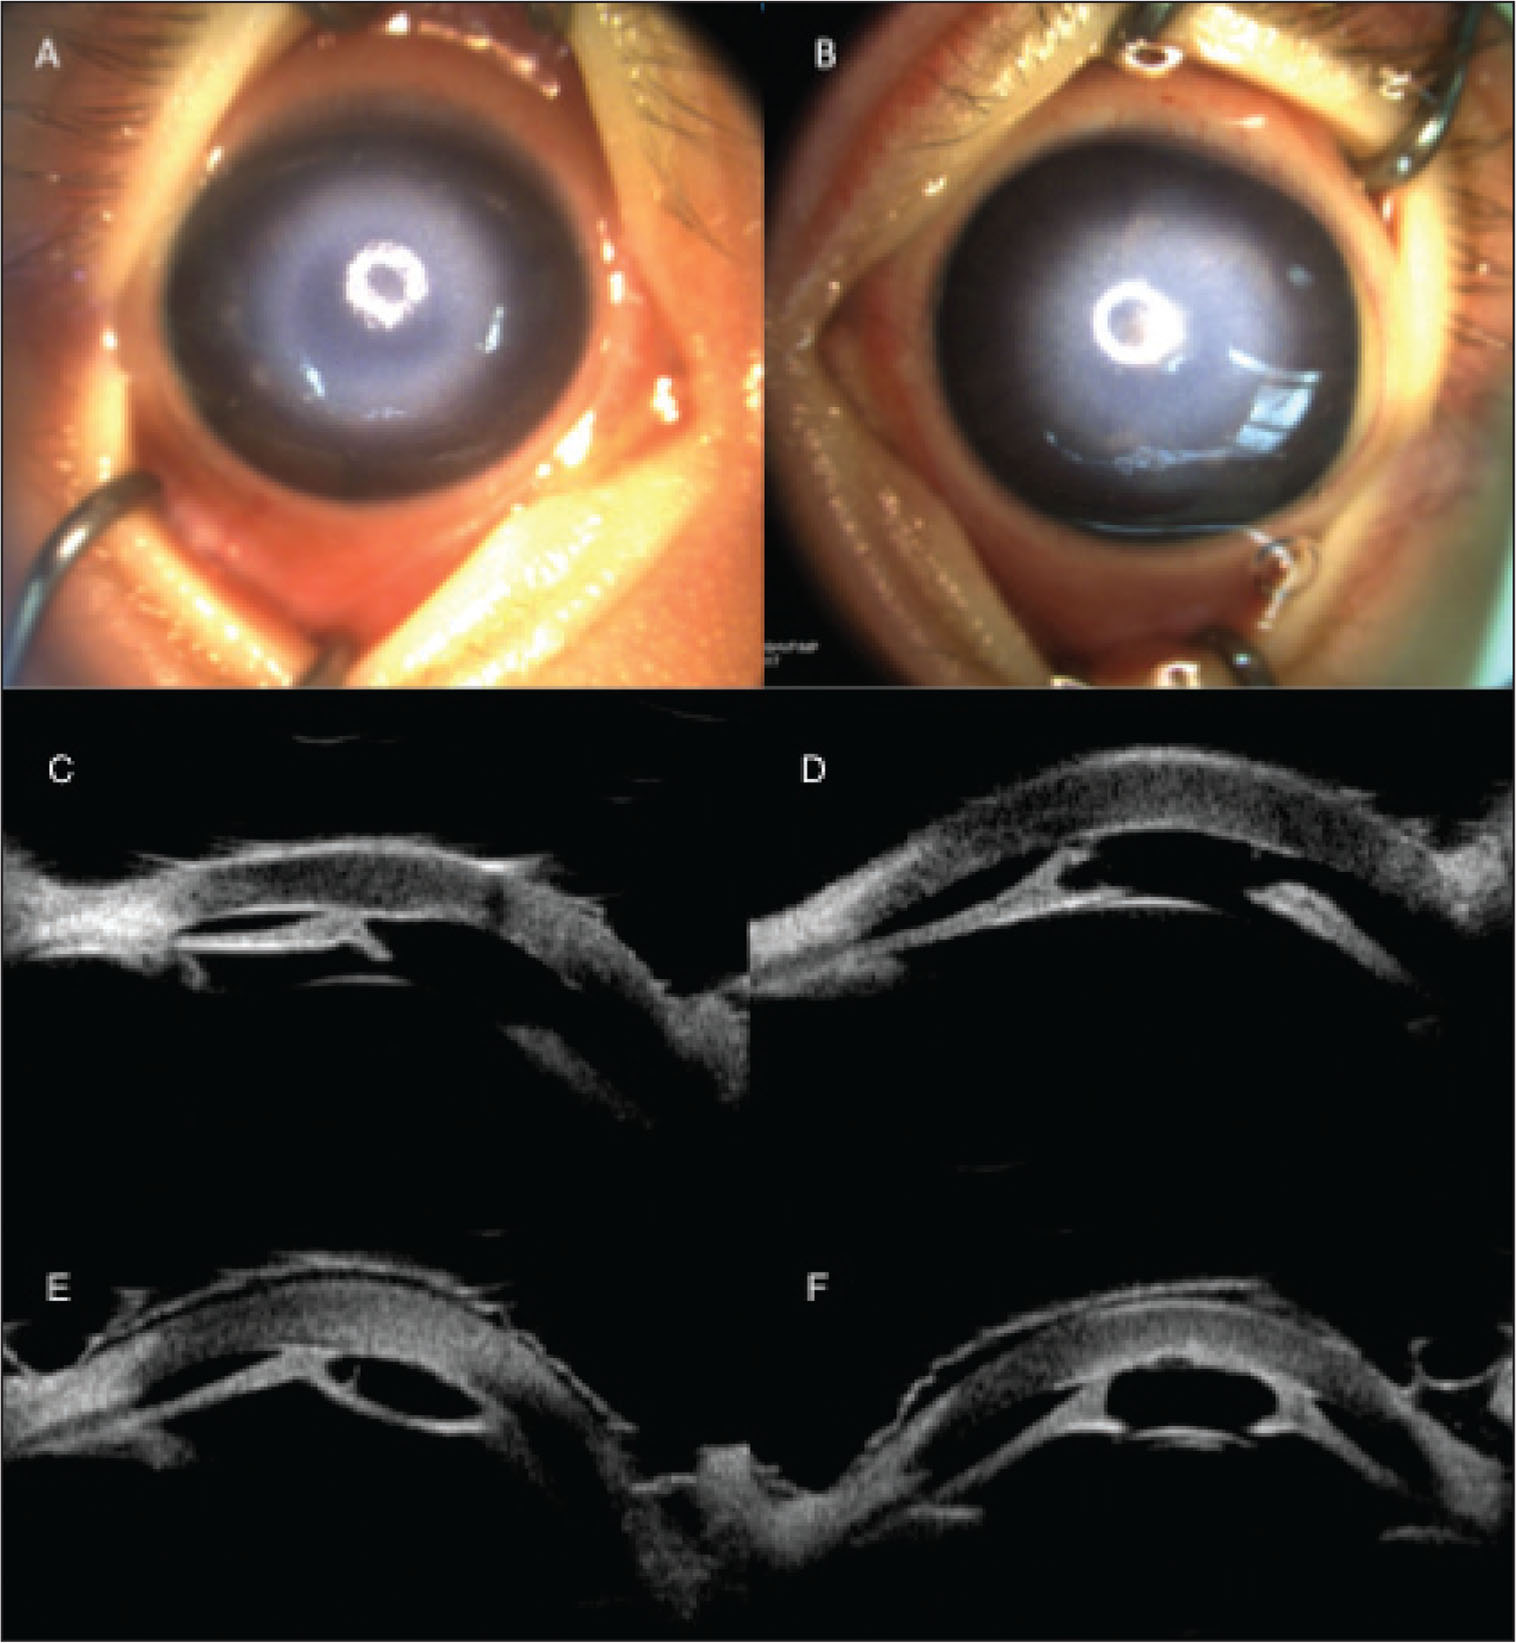 (A and B) Preoperative external photography showing bilateral dense central corneal opacities. Preoperative ultrasound biomicroscopy images showing iridocorneal adhesions and central corneal thickening in the (C and D) right and (E and F) left eyes.